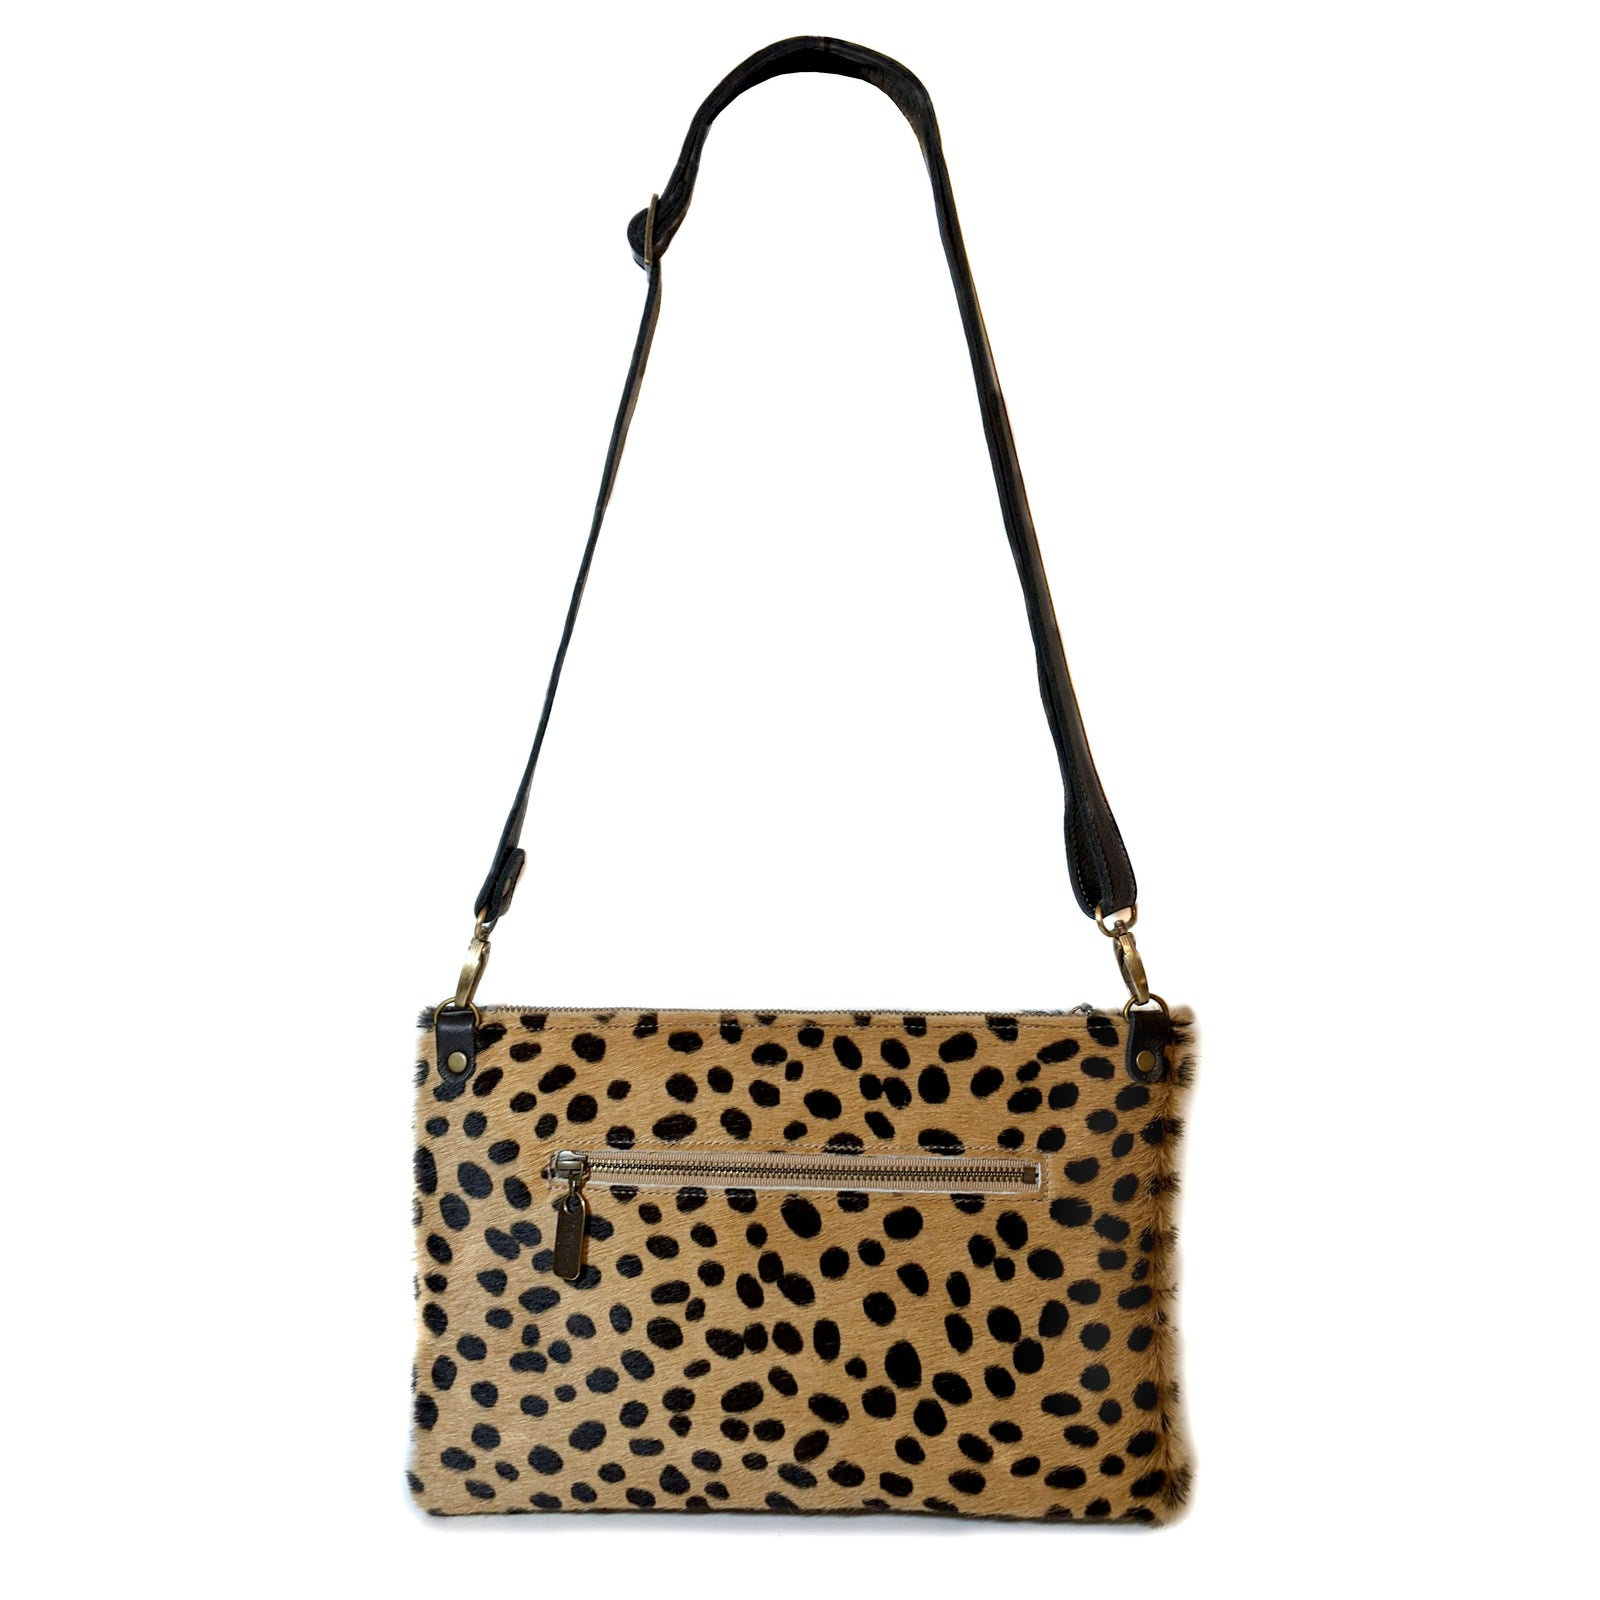 Cheetah Hairon S/M Crossbody, Clutch, back view, Made in the USA